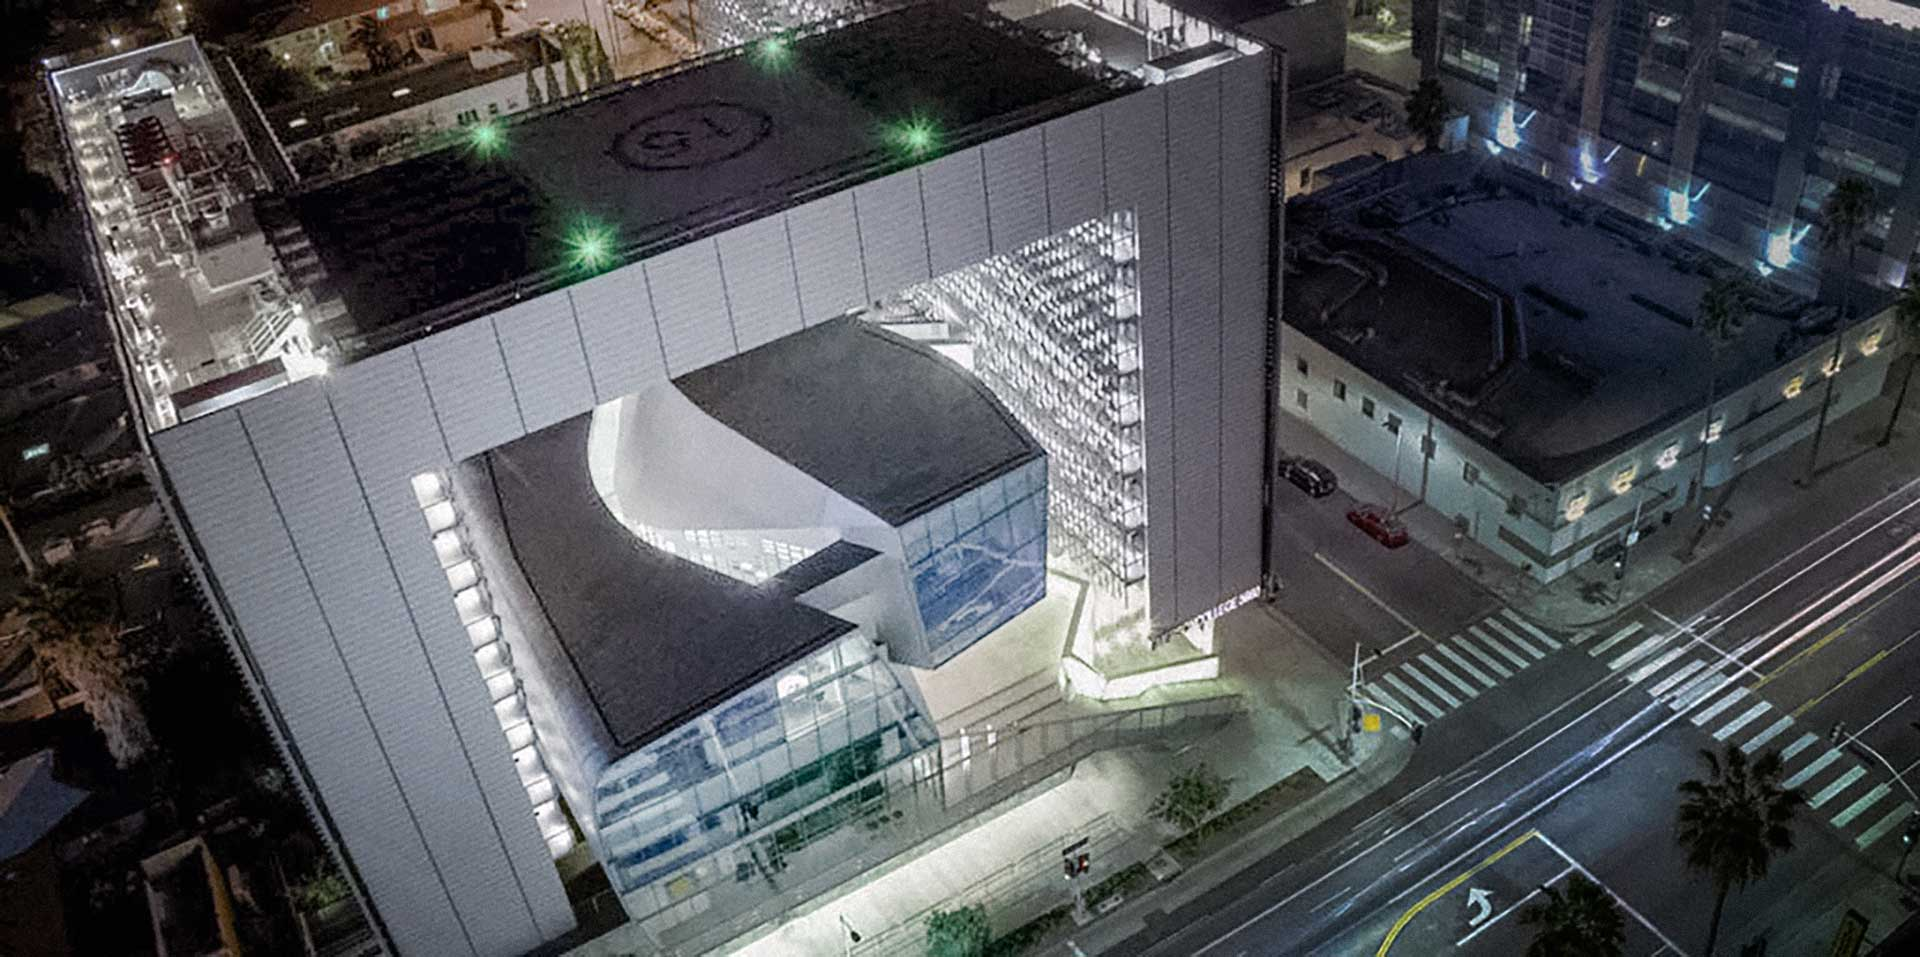 Photograph of the Emerson LA Campus at night.